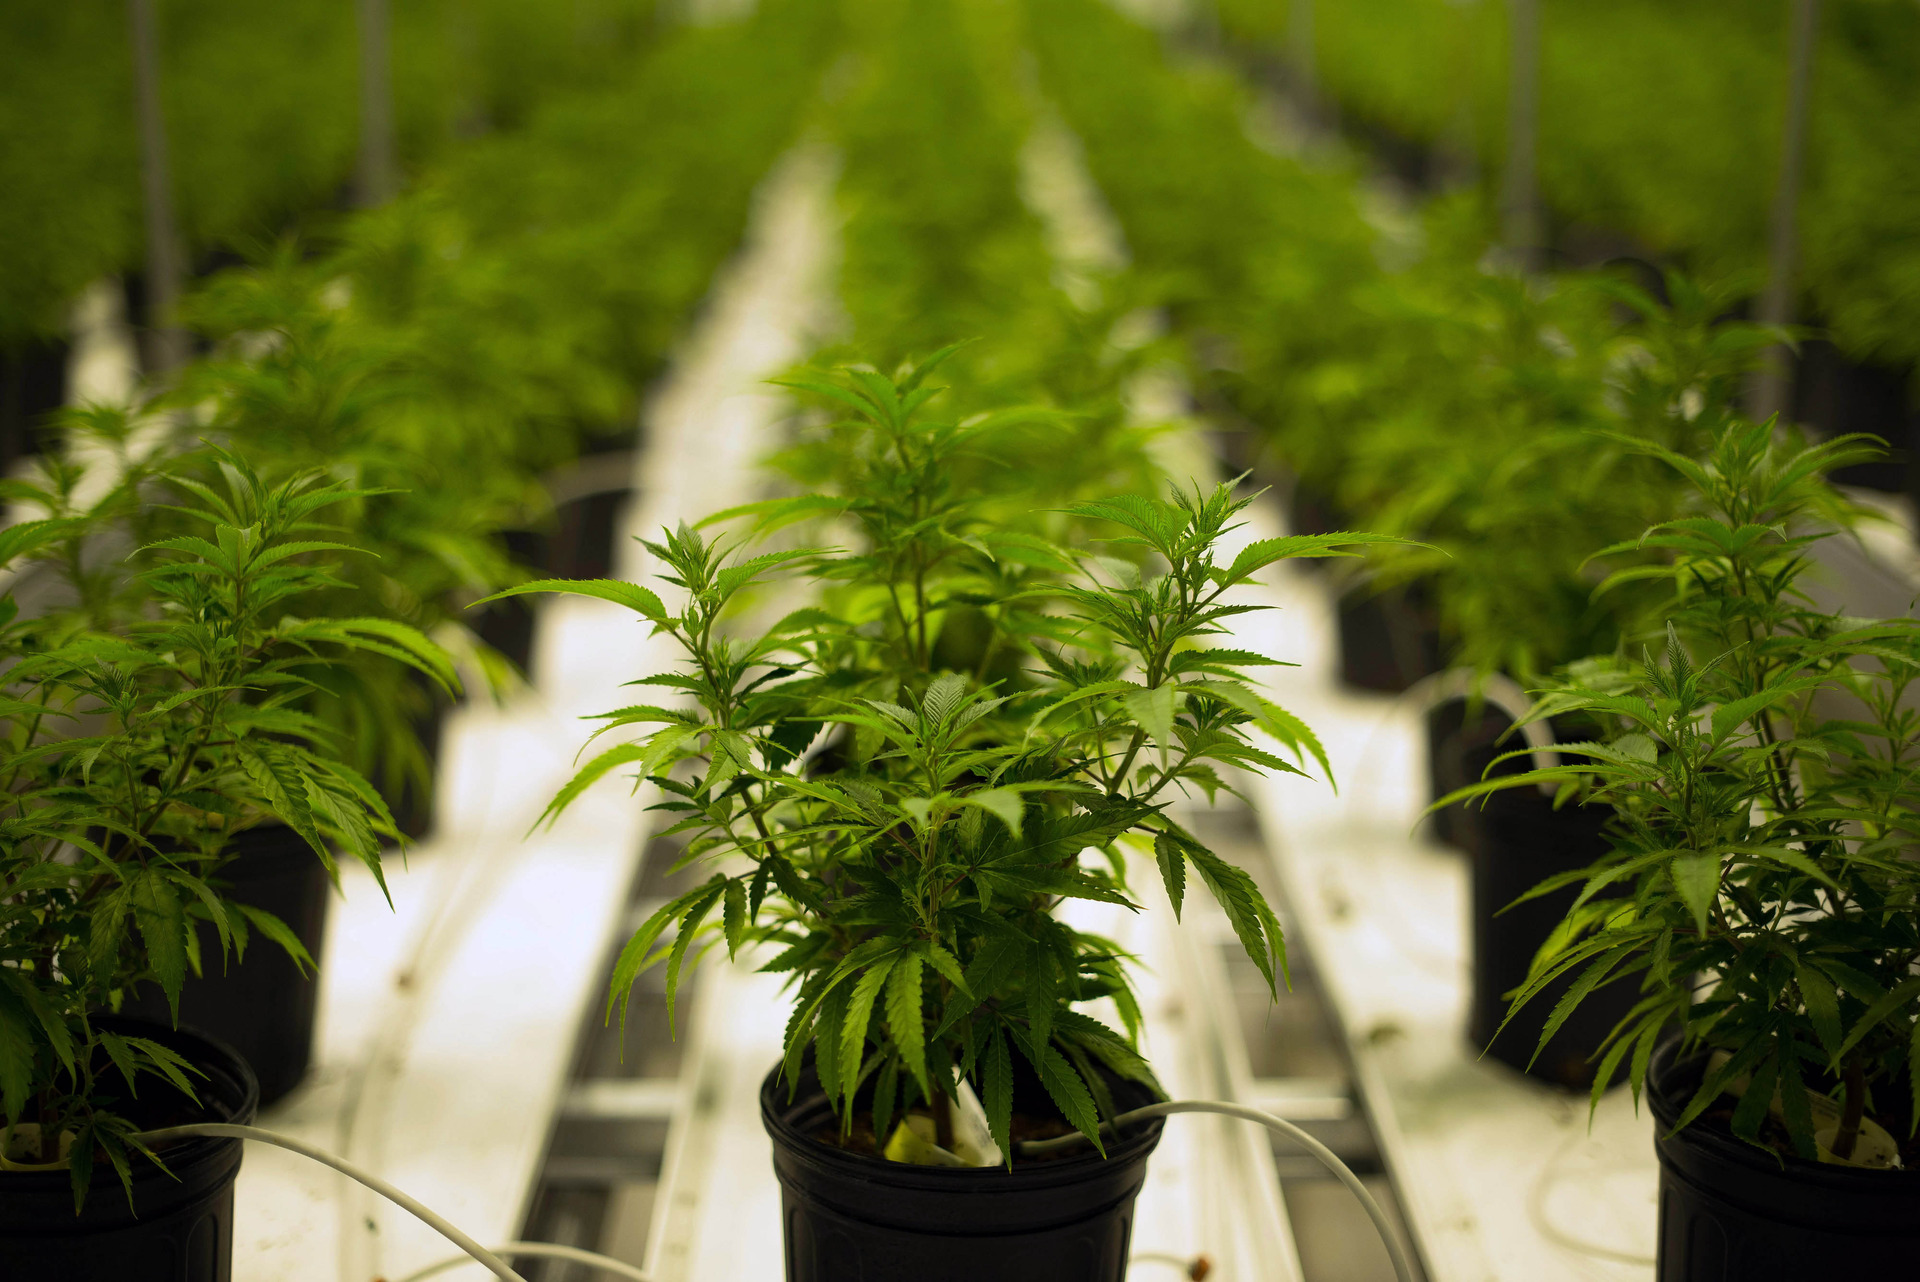 Kiwis support medicinal cannabis for many conditions: Poll